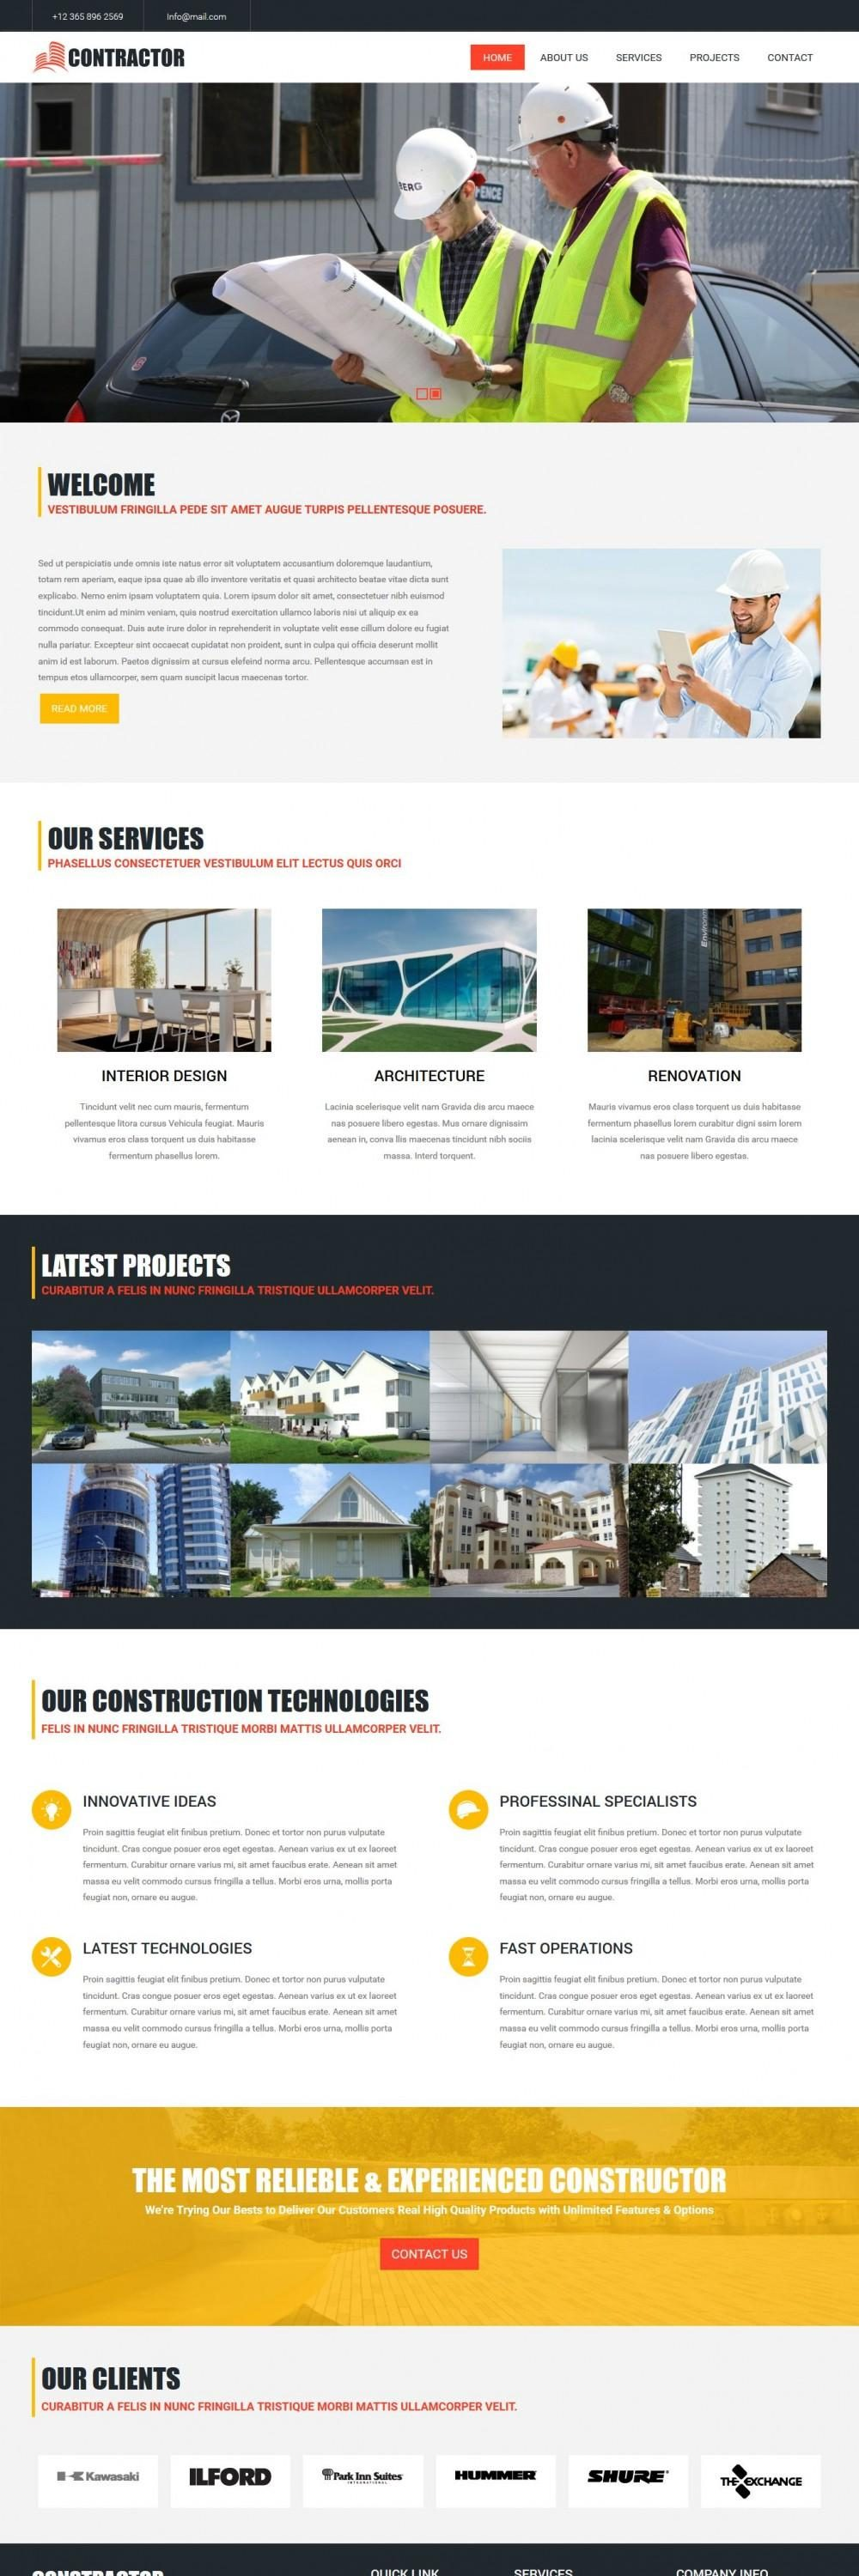 Contractor - Amazing WordPress Theme for Construction Business